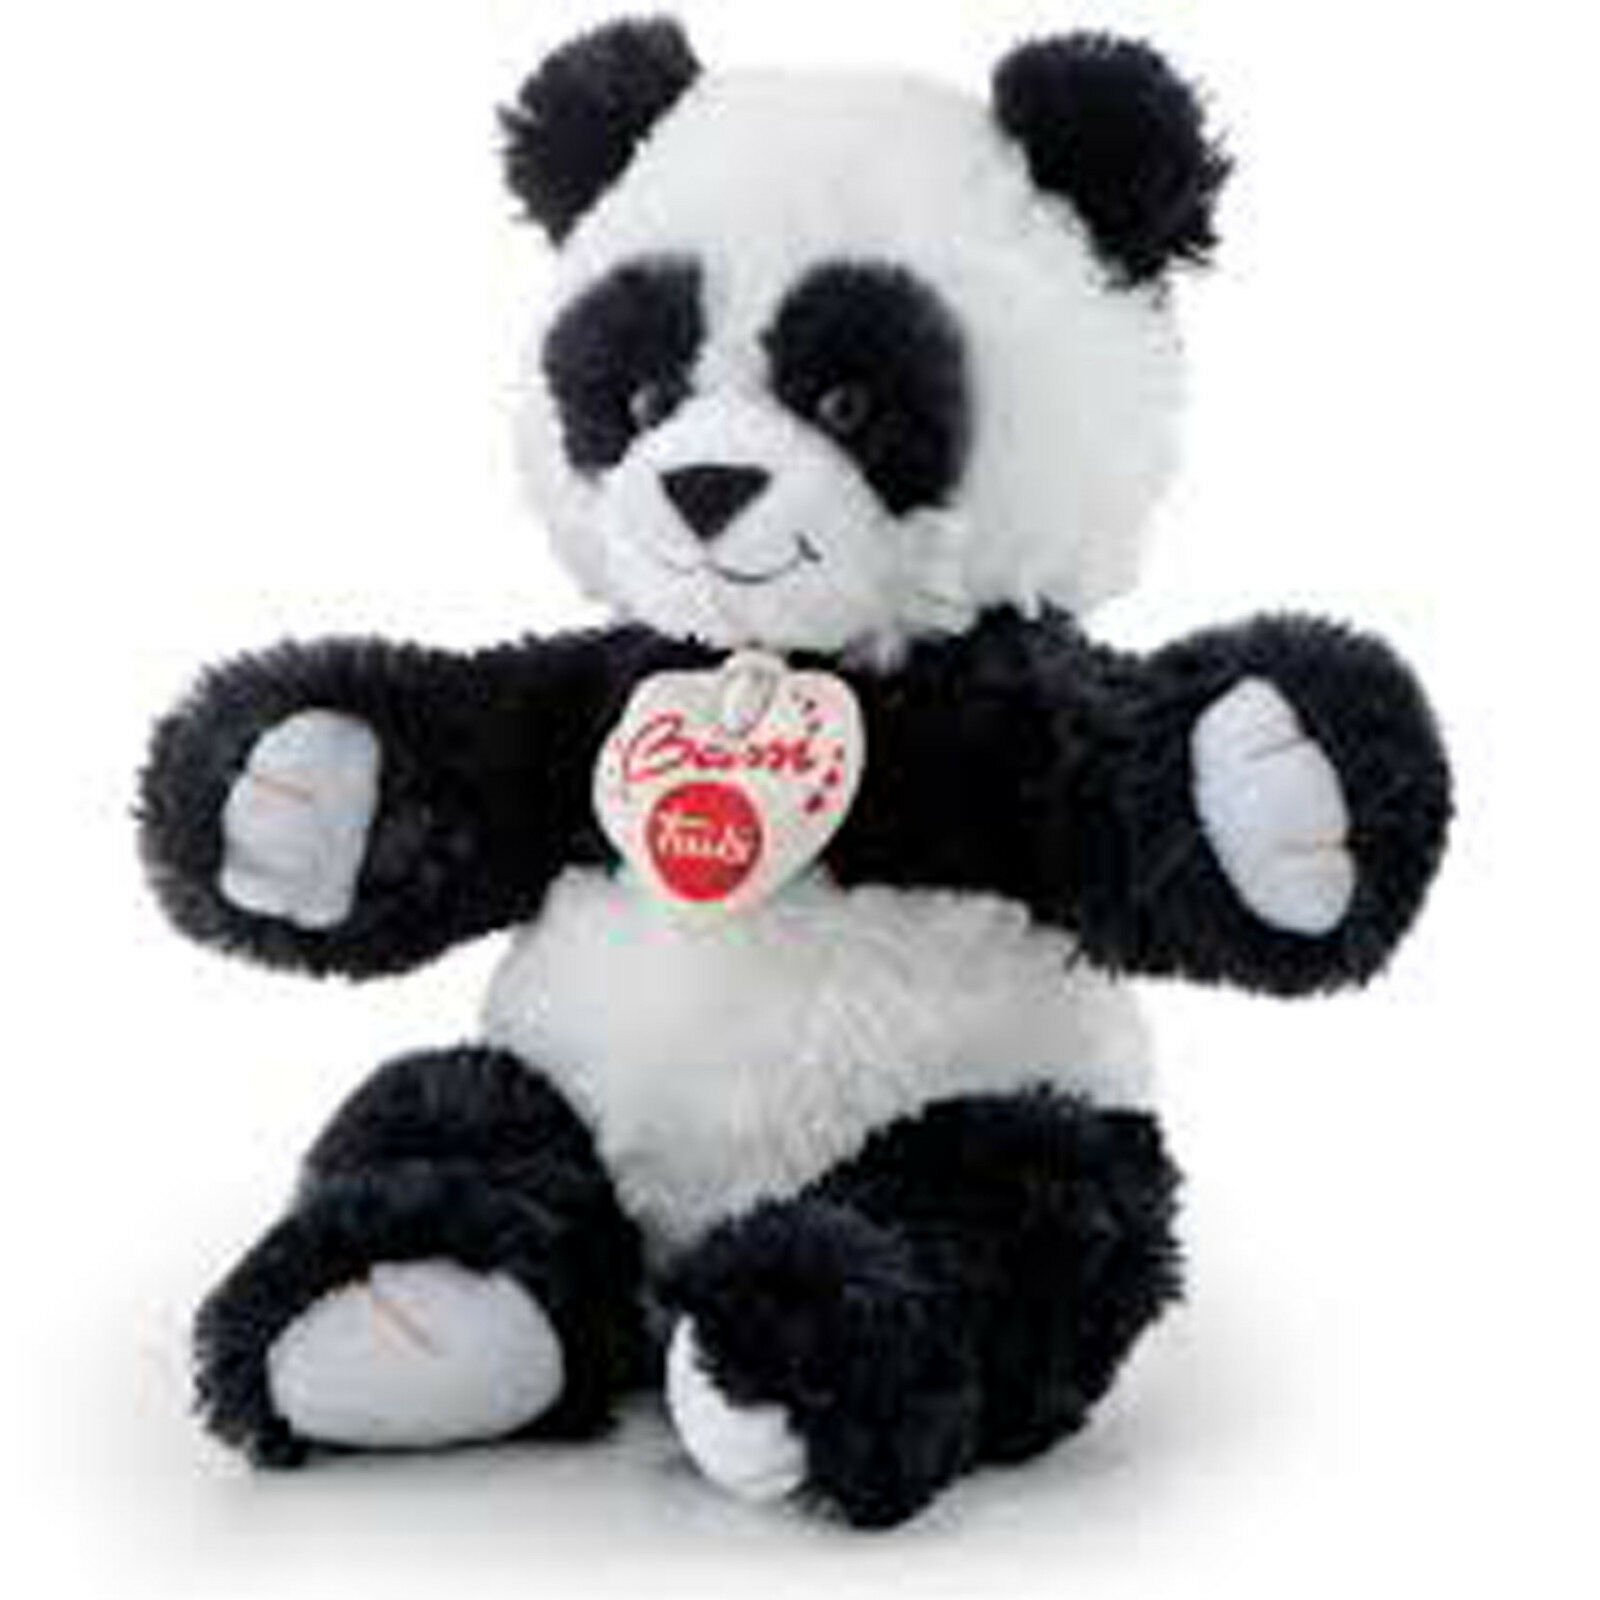 Panda BEST BUSSI  TRUDI cm 20 Top quality made in Italy